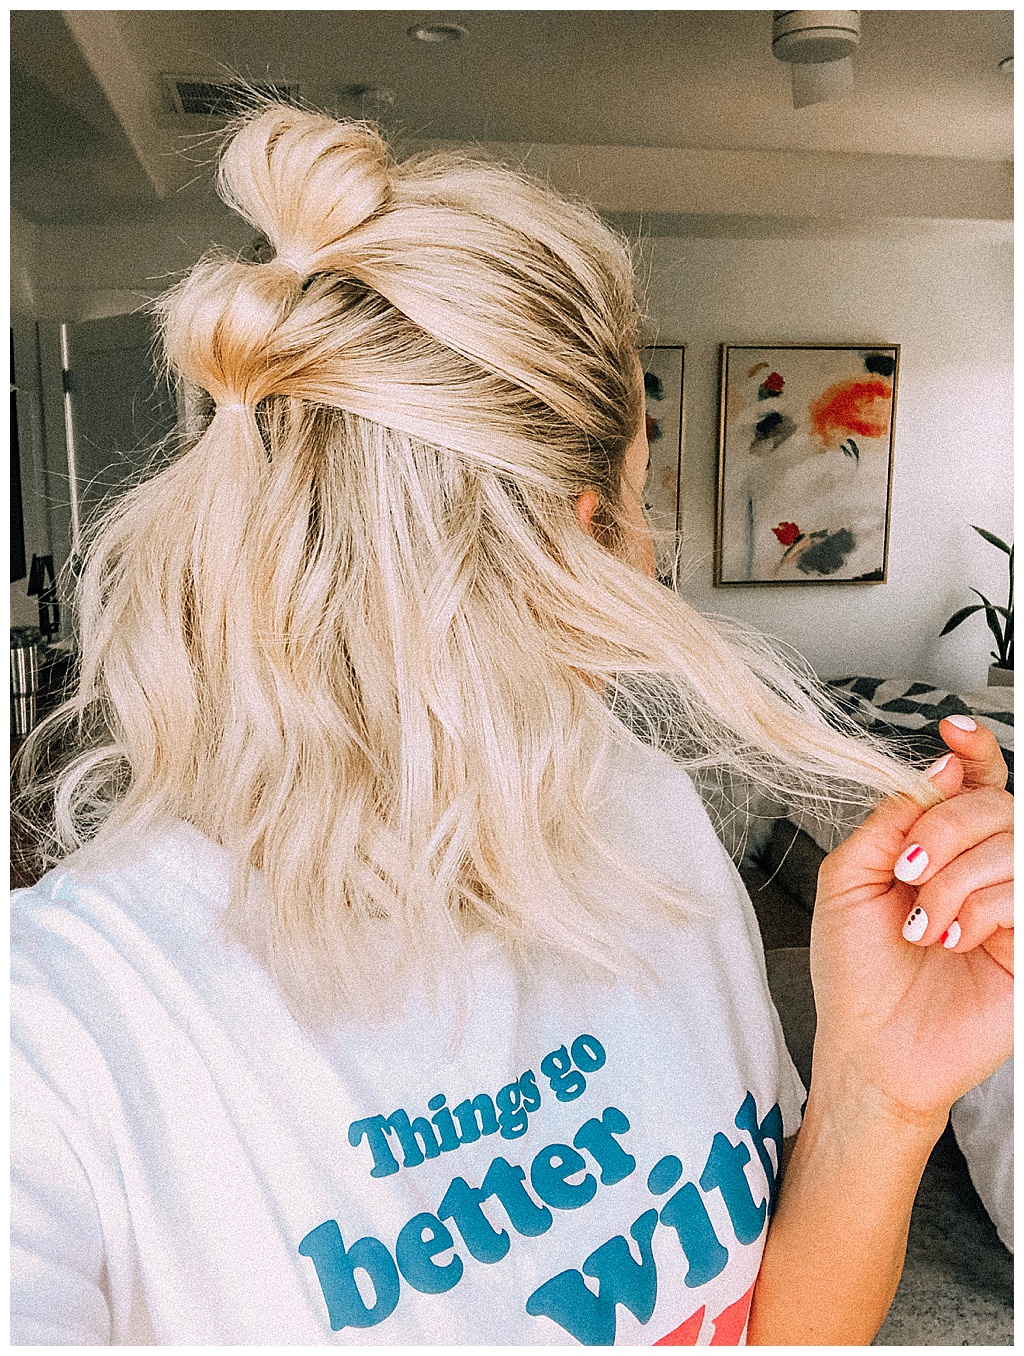 If you've been stuck in a hairstyle rut then you are going to love this triple bubble ponytail. It's simple and stylish and works even better on second or third day hair.